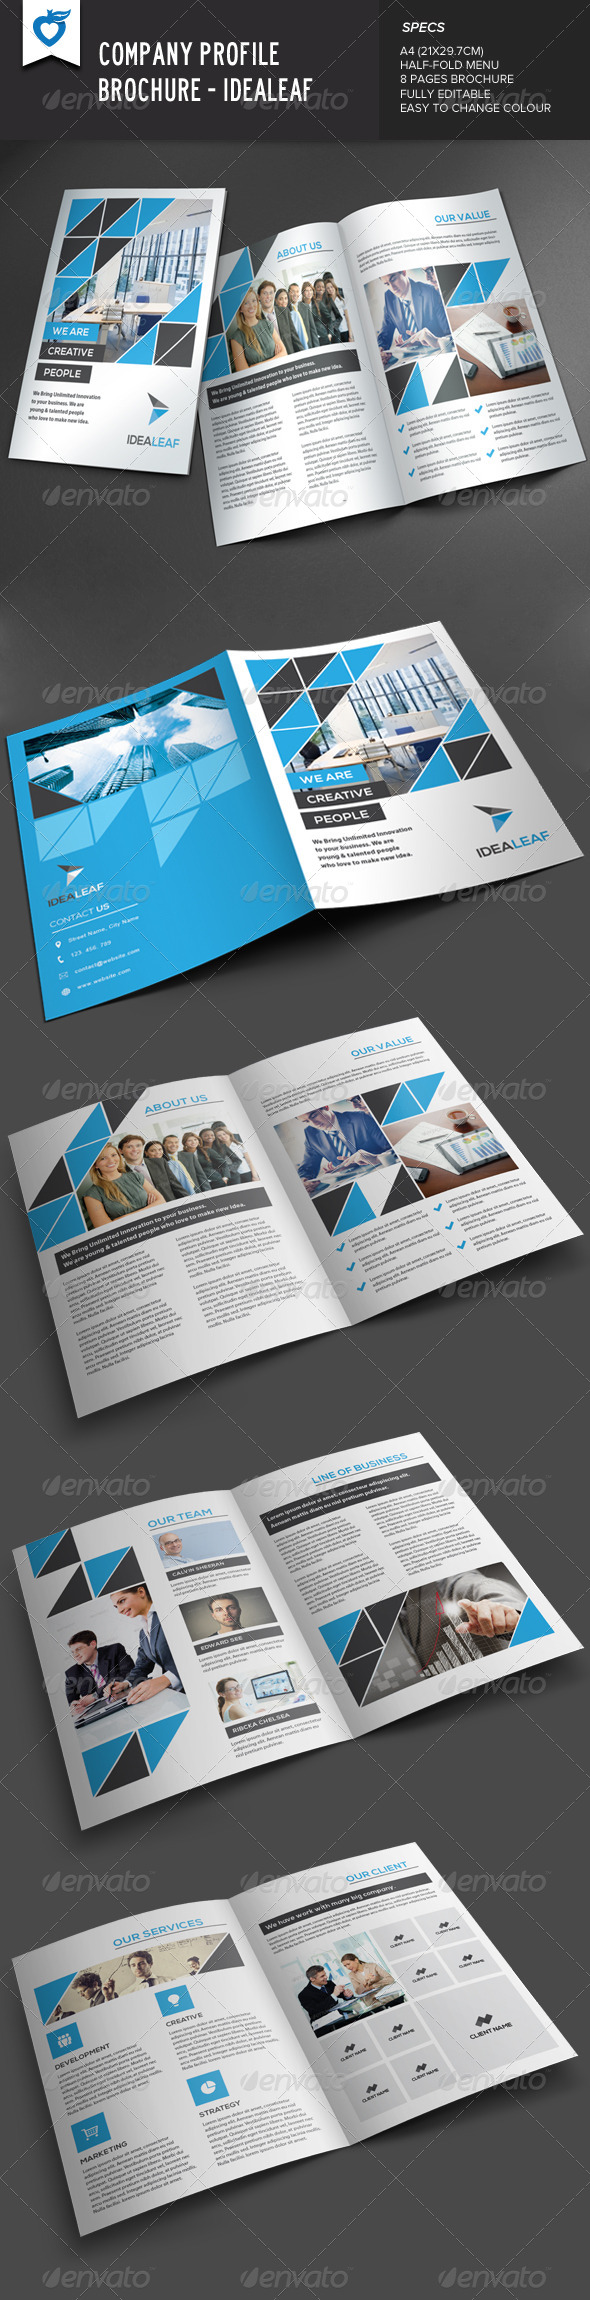 GraphicRiver Company Profile Brochure IdeaLeaf 7989024